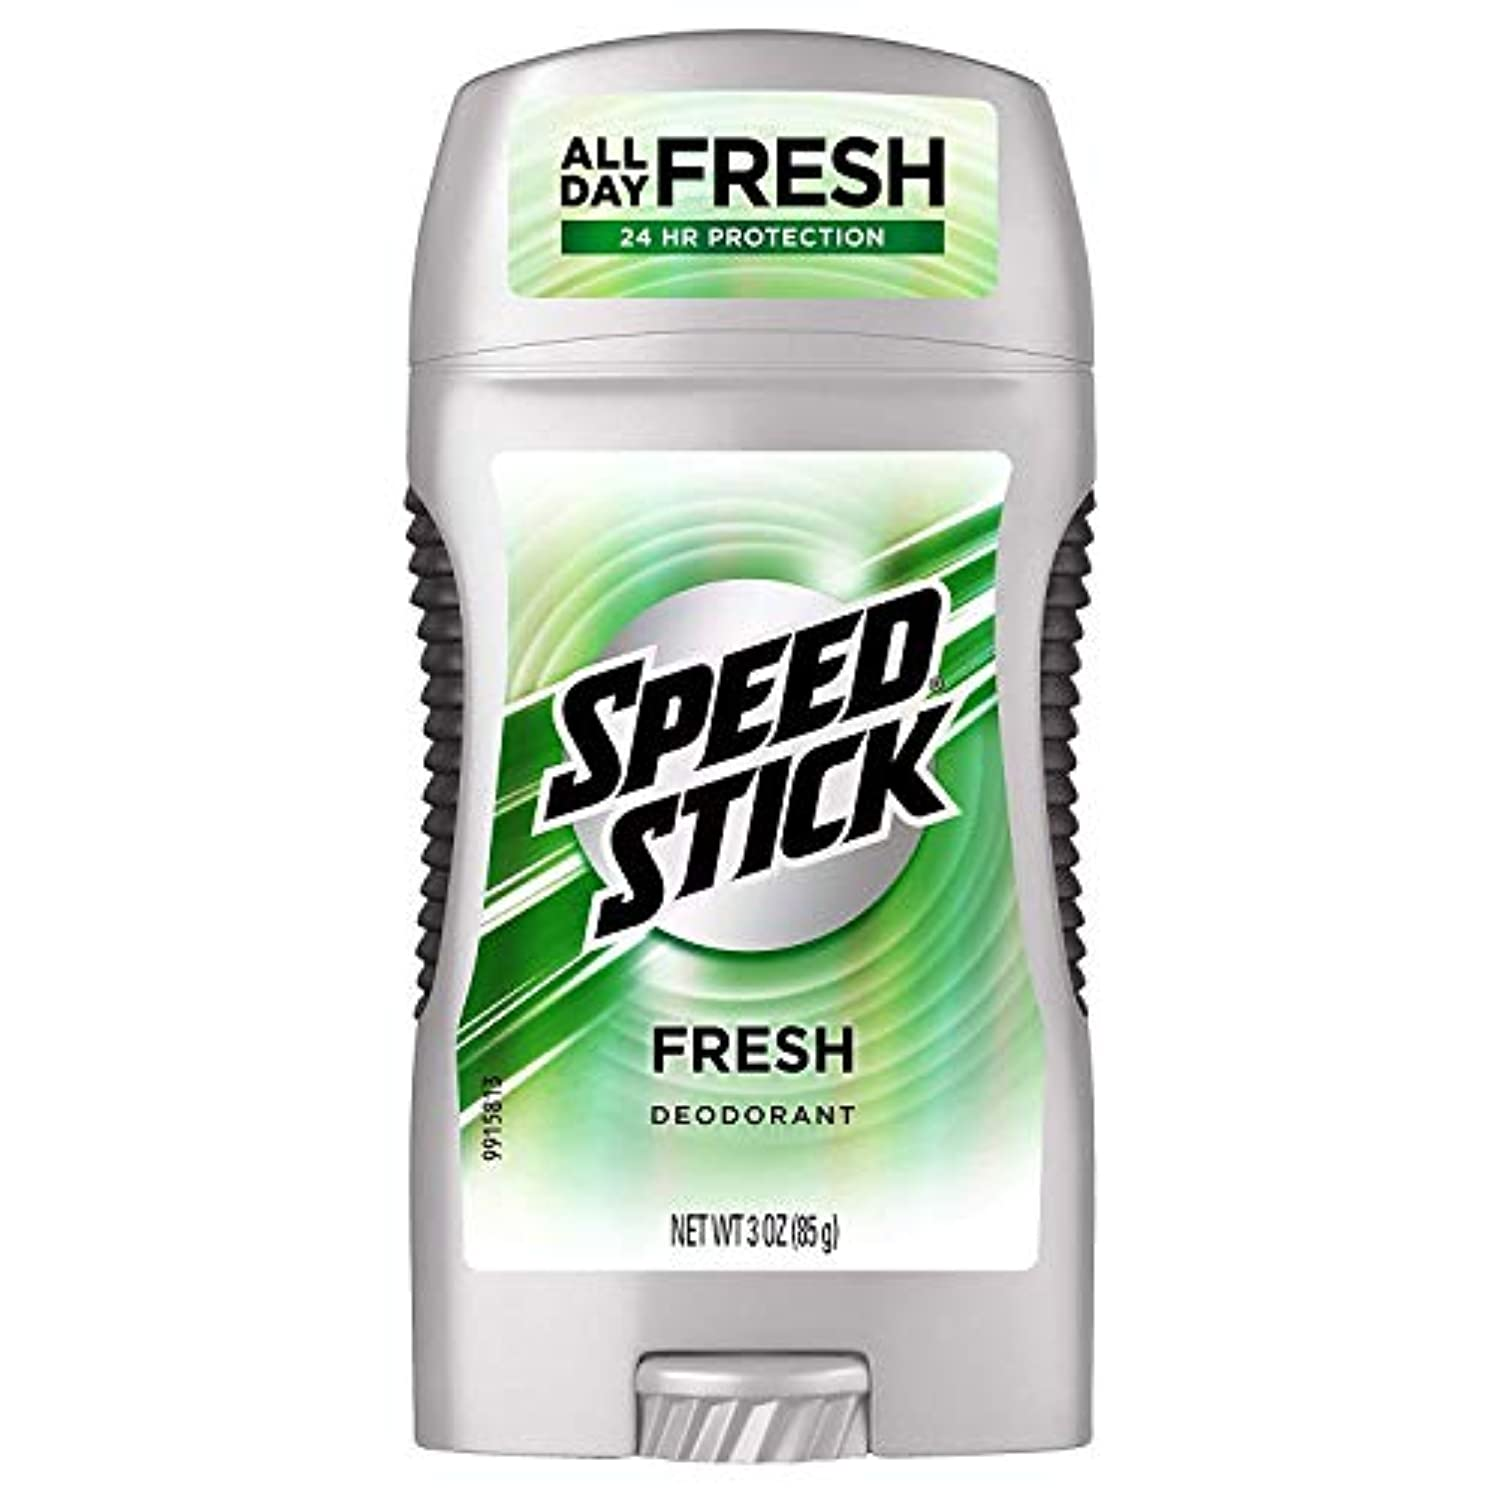 リスクそれるかんたんSpeed Stick Deodorant, Clear, Fresh, 3 oz, (Case of 6) by Mennen [並行輸入品]